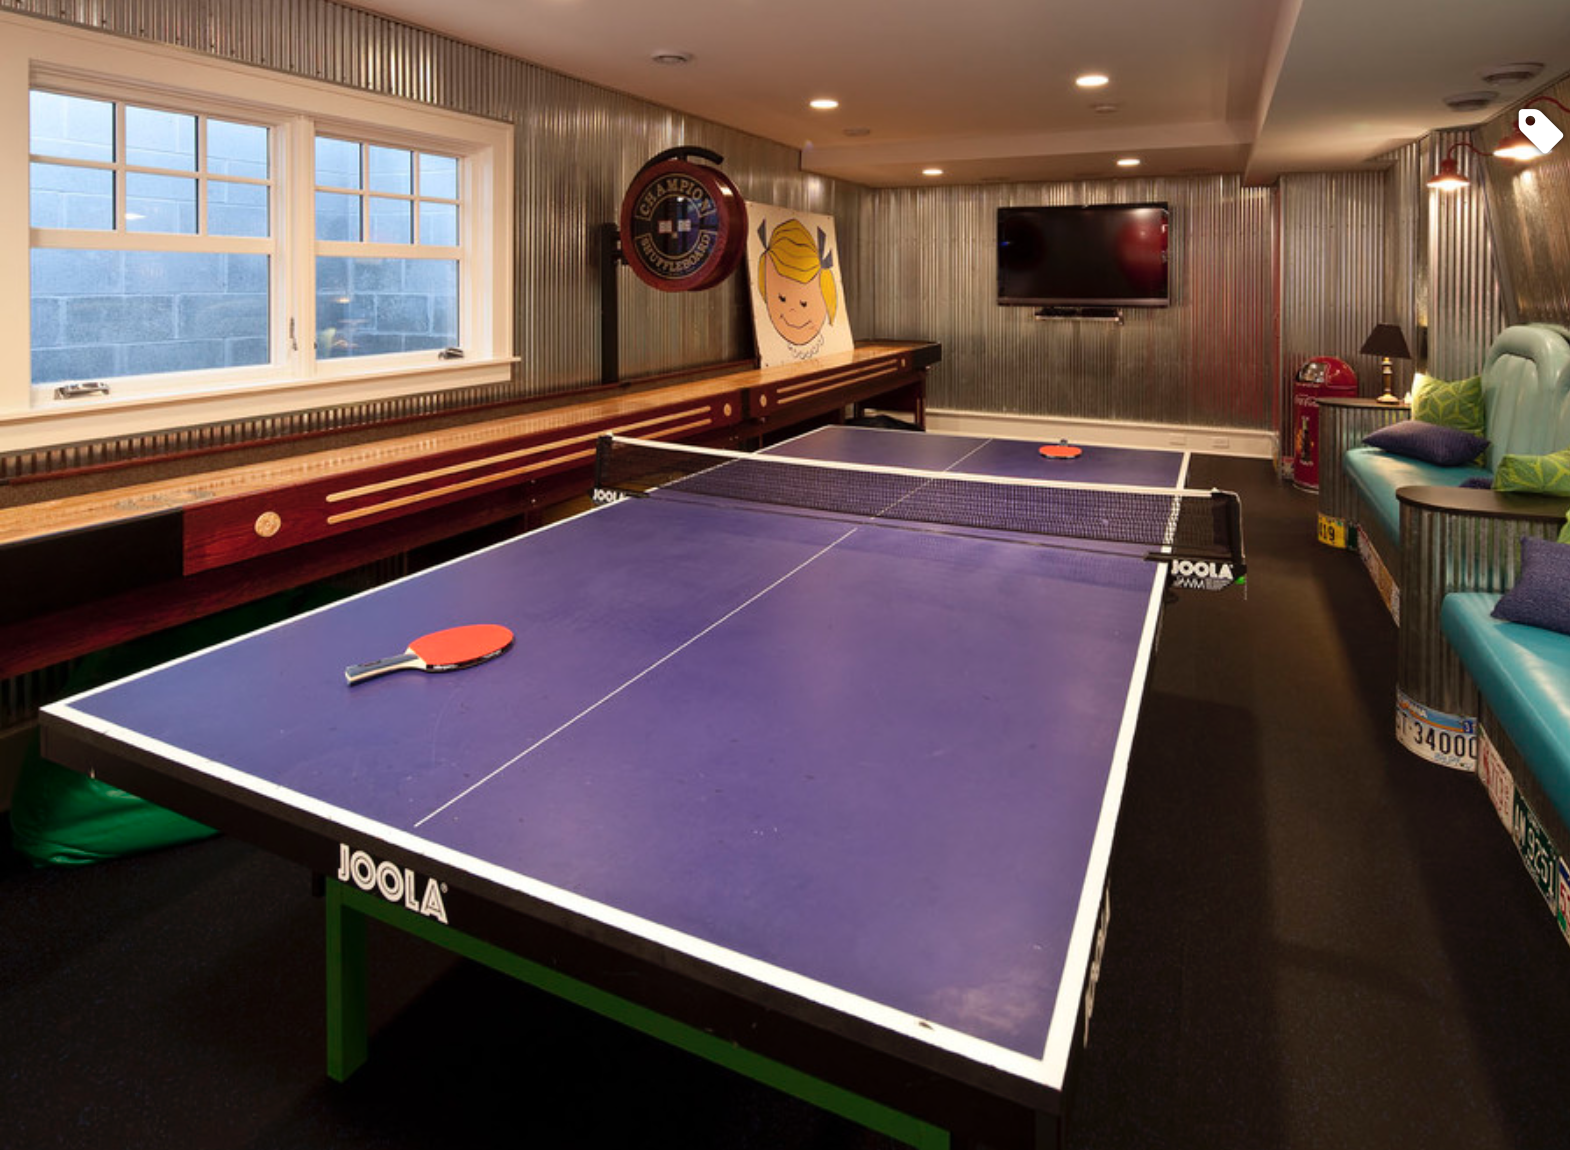 Https Www Houzz Com Photo 800669 Game Room Traditional Family Room Game Room Design Ping Pong Table Recreational Room